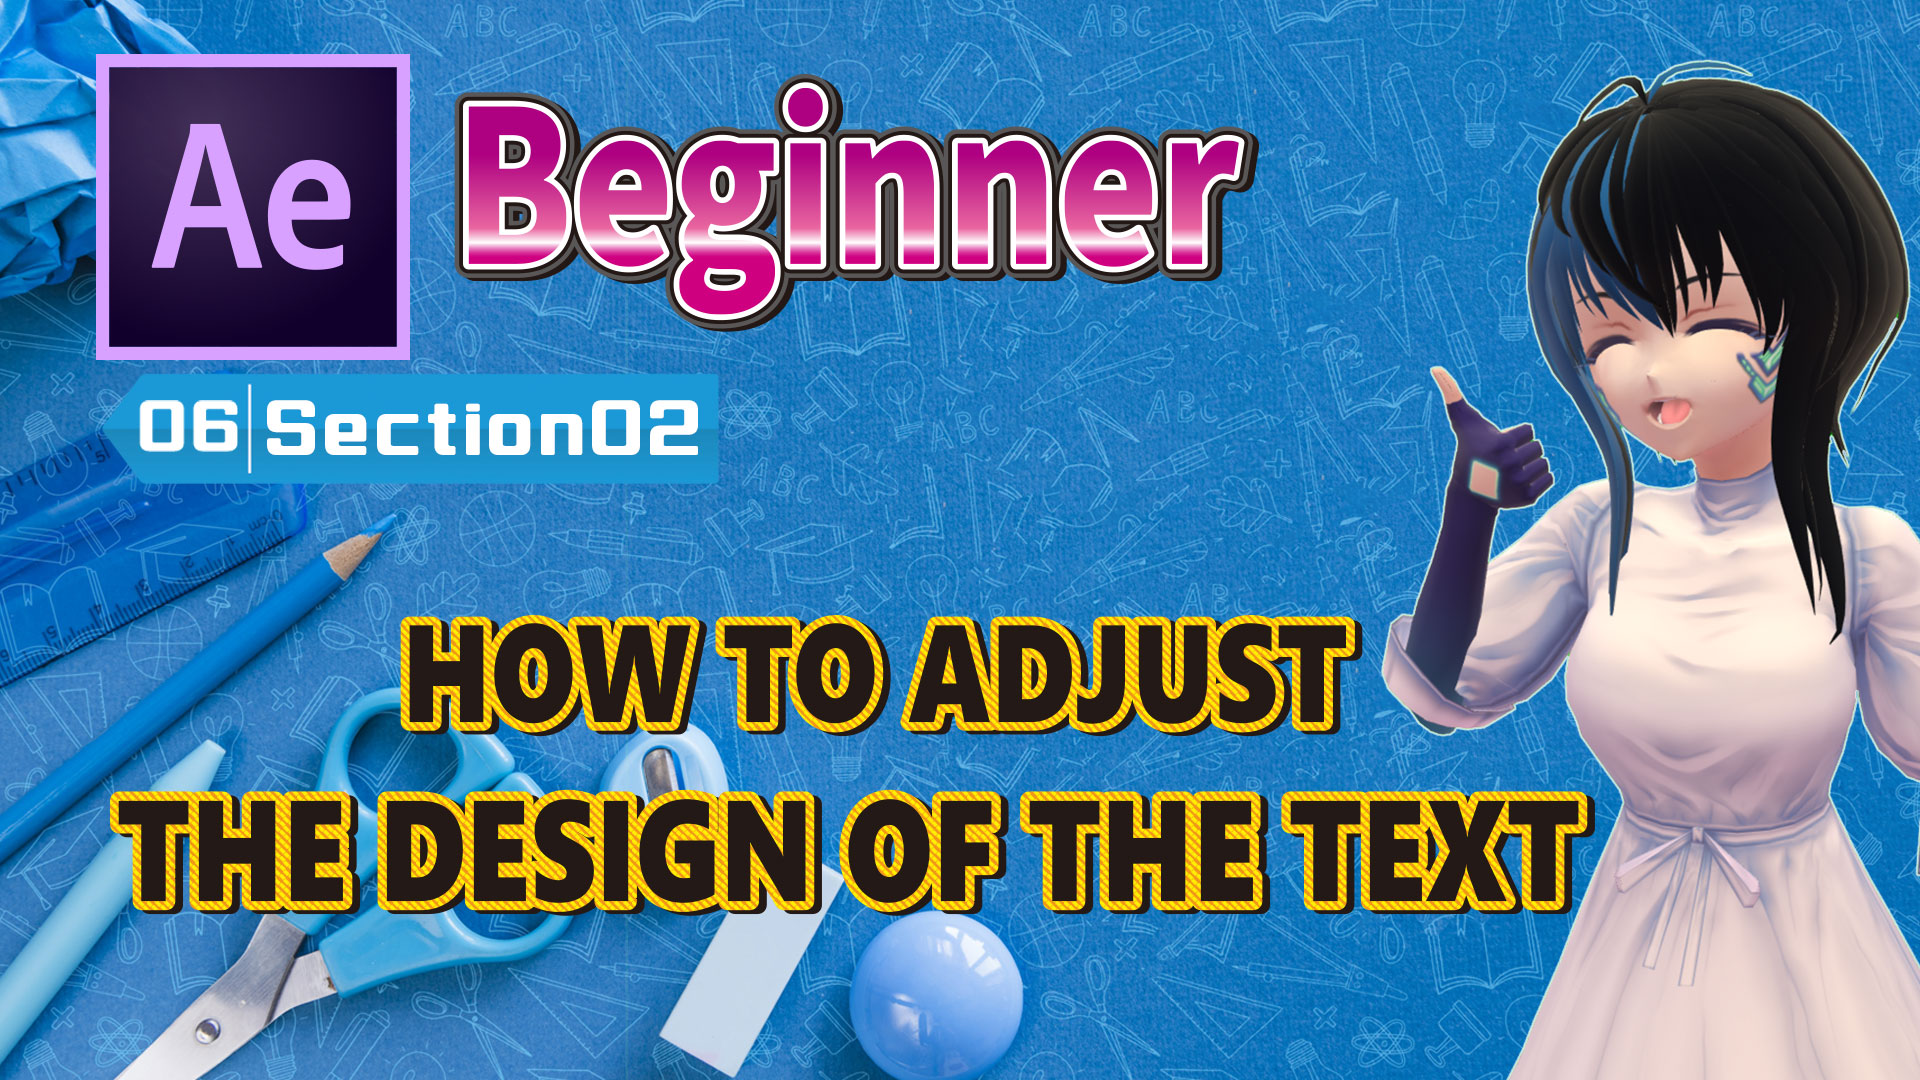 HOW TO ADJUST THE DESIGN OF THE TEXT